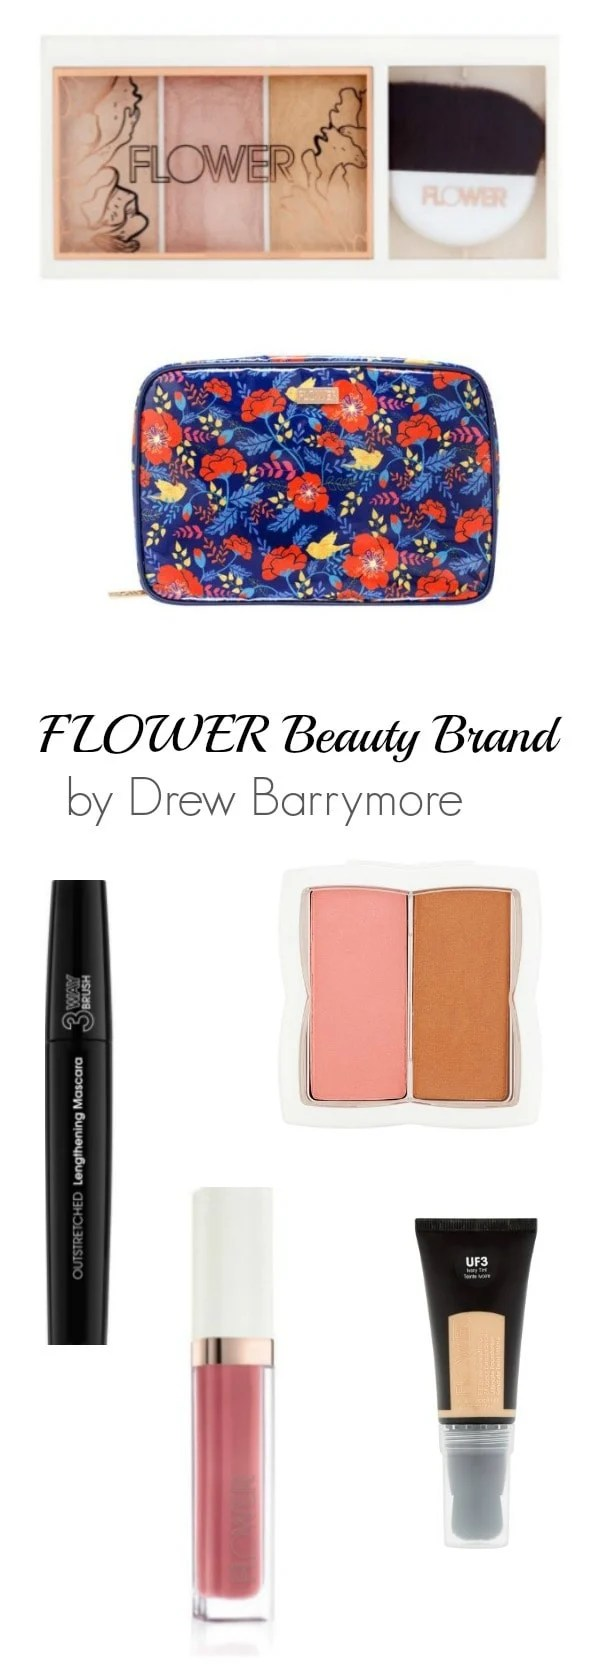 Where to buy flower beauty products from drew barrymore where to buy flower beauty products from drew barrymore view these popular cosmetics and beauty izmirmasajfo